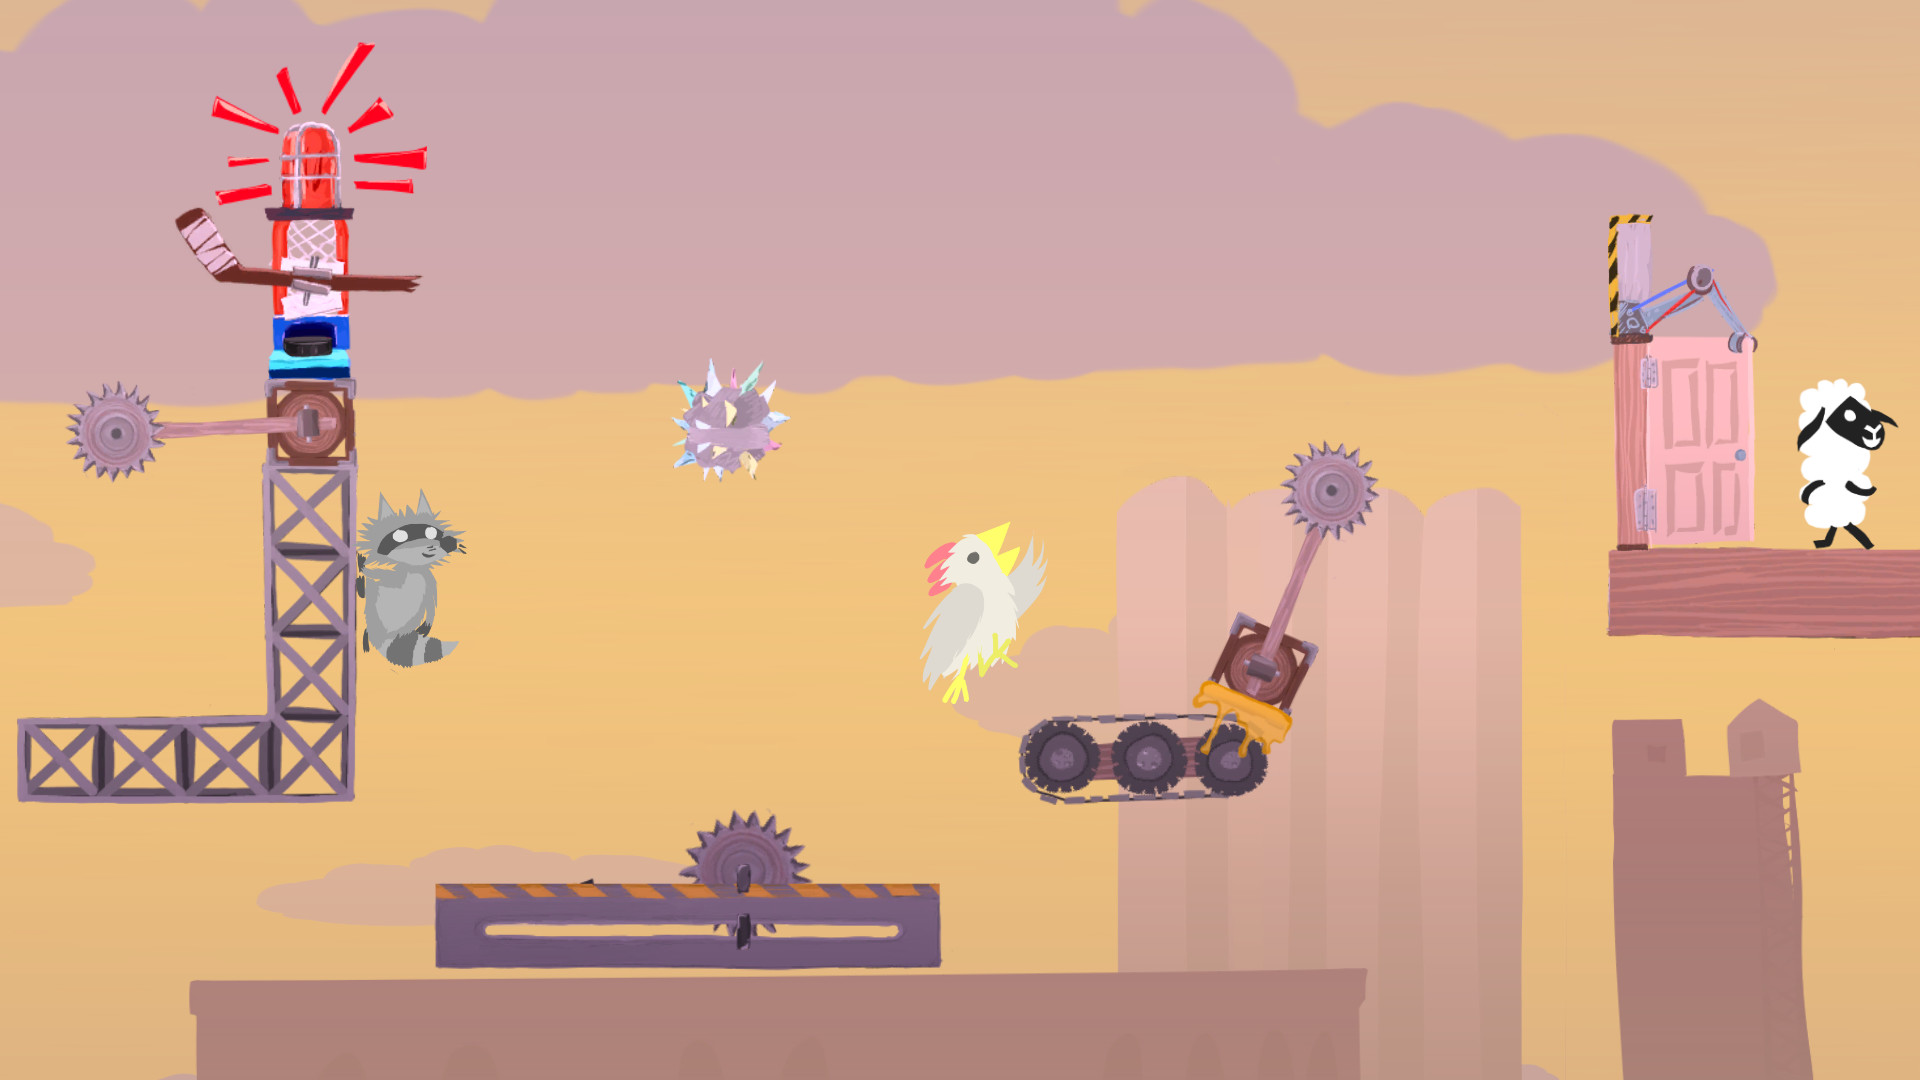 Ultimate Chicken Horse